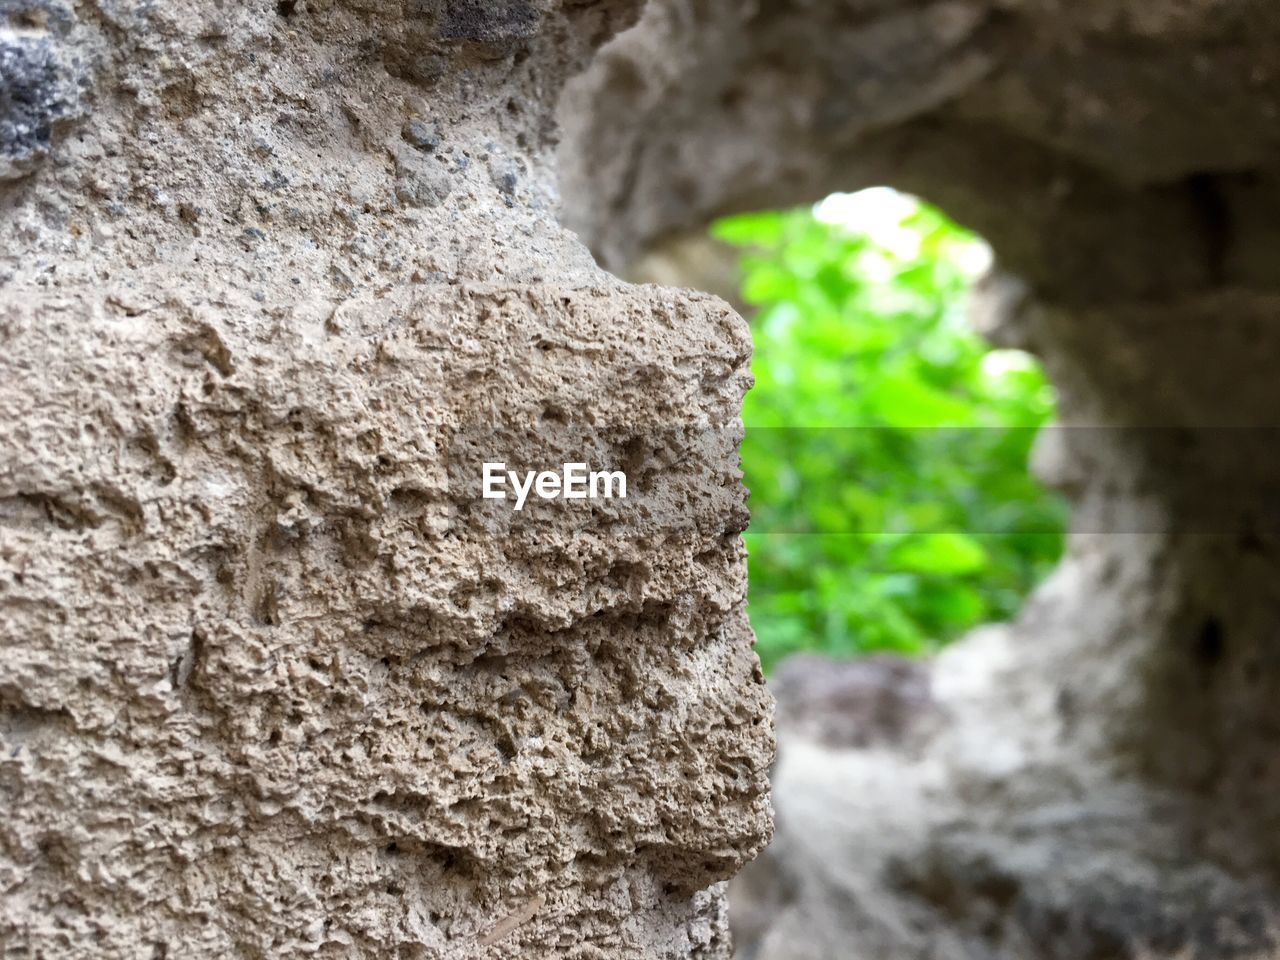 textured, day, rock - object, no people, nature, focus on foreground, rough, close-up, outdoors, tree trunk, beauty in nature